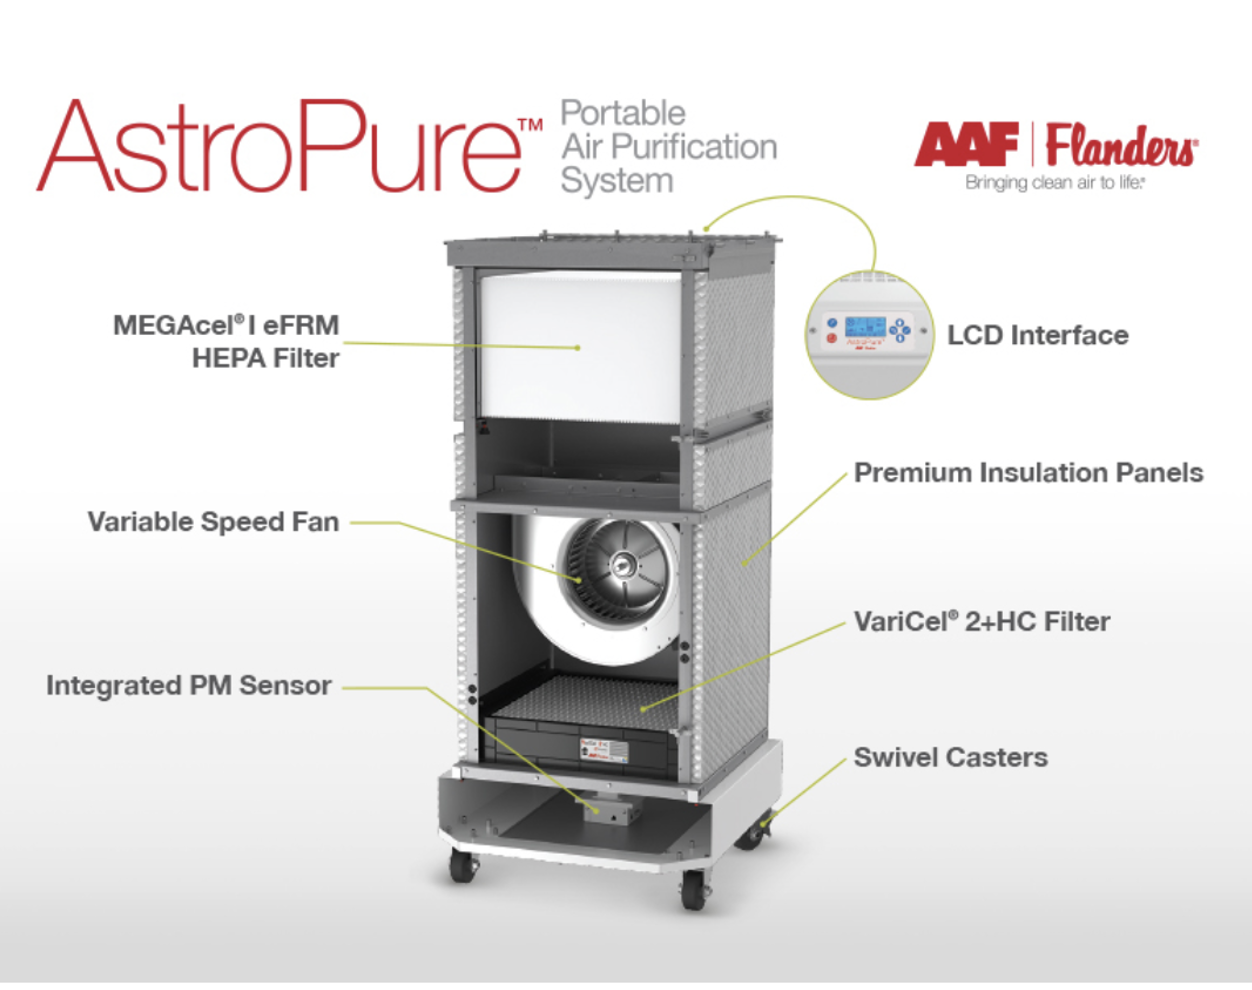 First-class features provide a breath of fresh air. Introducing AstroPure™ from AAF Flanders.